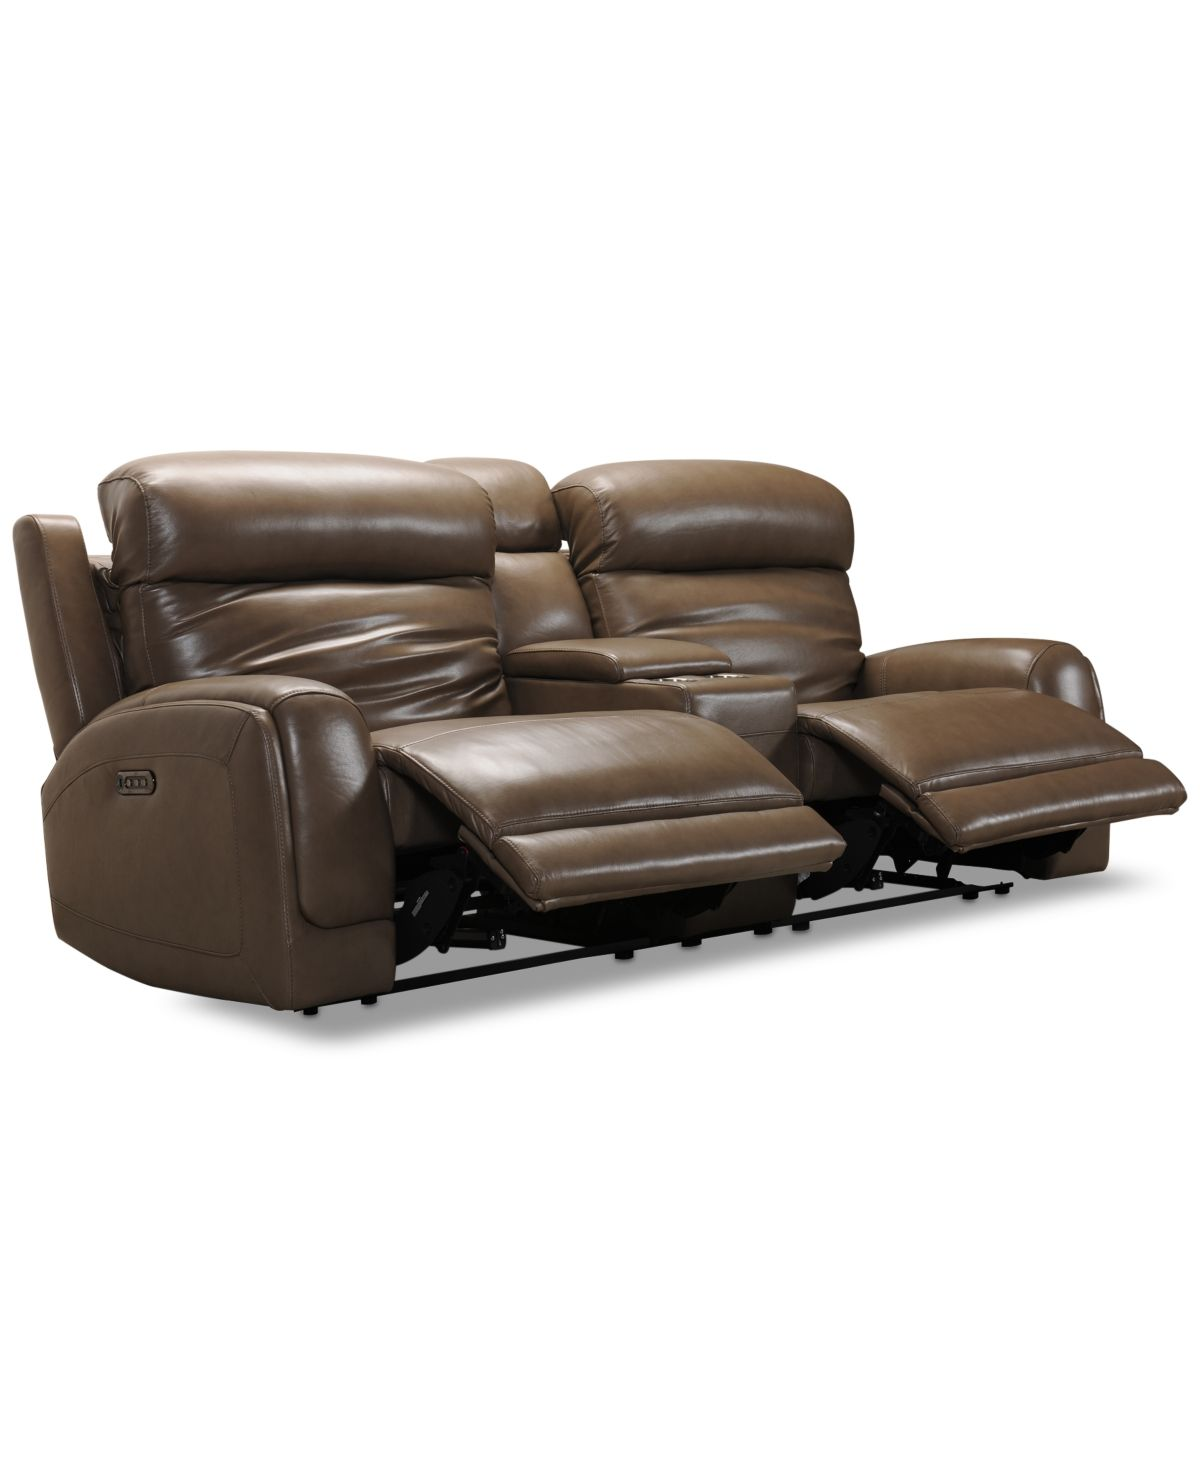 Winterton 95 3 Pc Leather Power Reclining Sofa With 2 Power Recliners Power Headrests Lumbar Console Usb Power Outlet Grey Reclining Sofa Sectional Sofa With Recliner Power Recliners